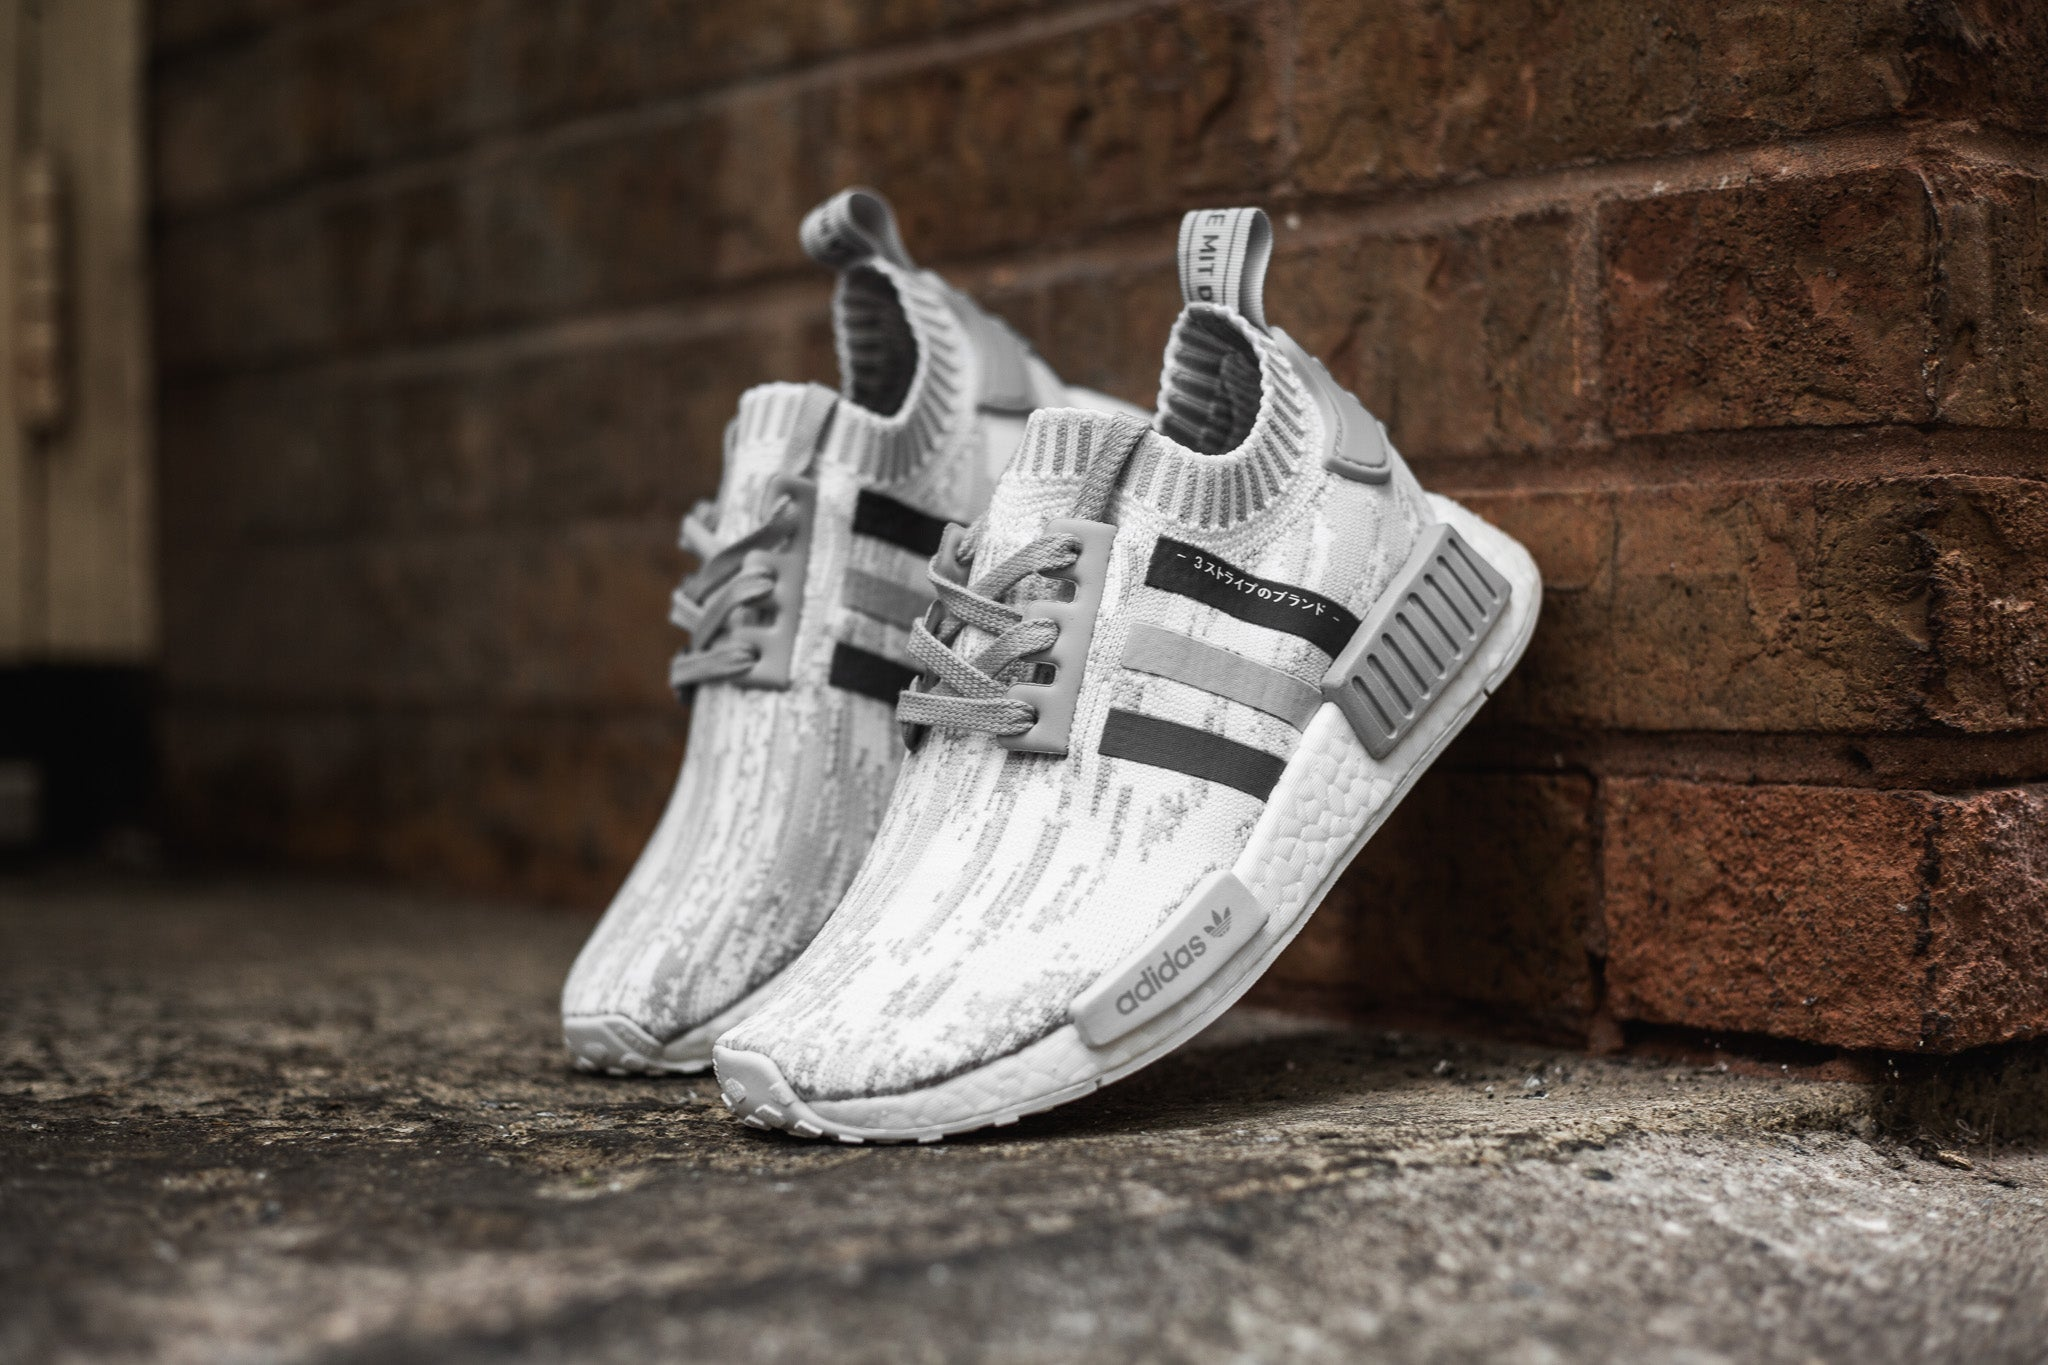 The adidas W NMD R1 PK features the glitch digicamo this season with tonal  grey accents decorating the top. The upper construction is made with adidas  ... 253f7be818